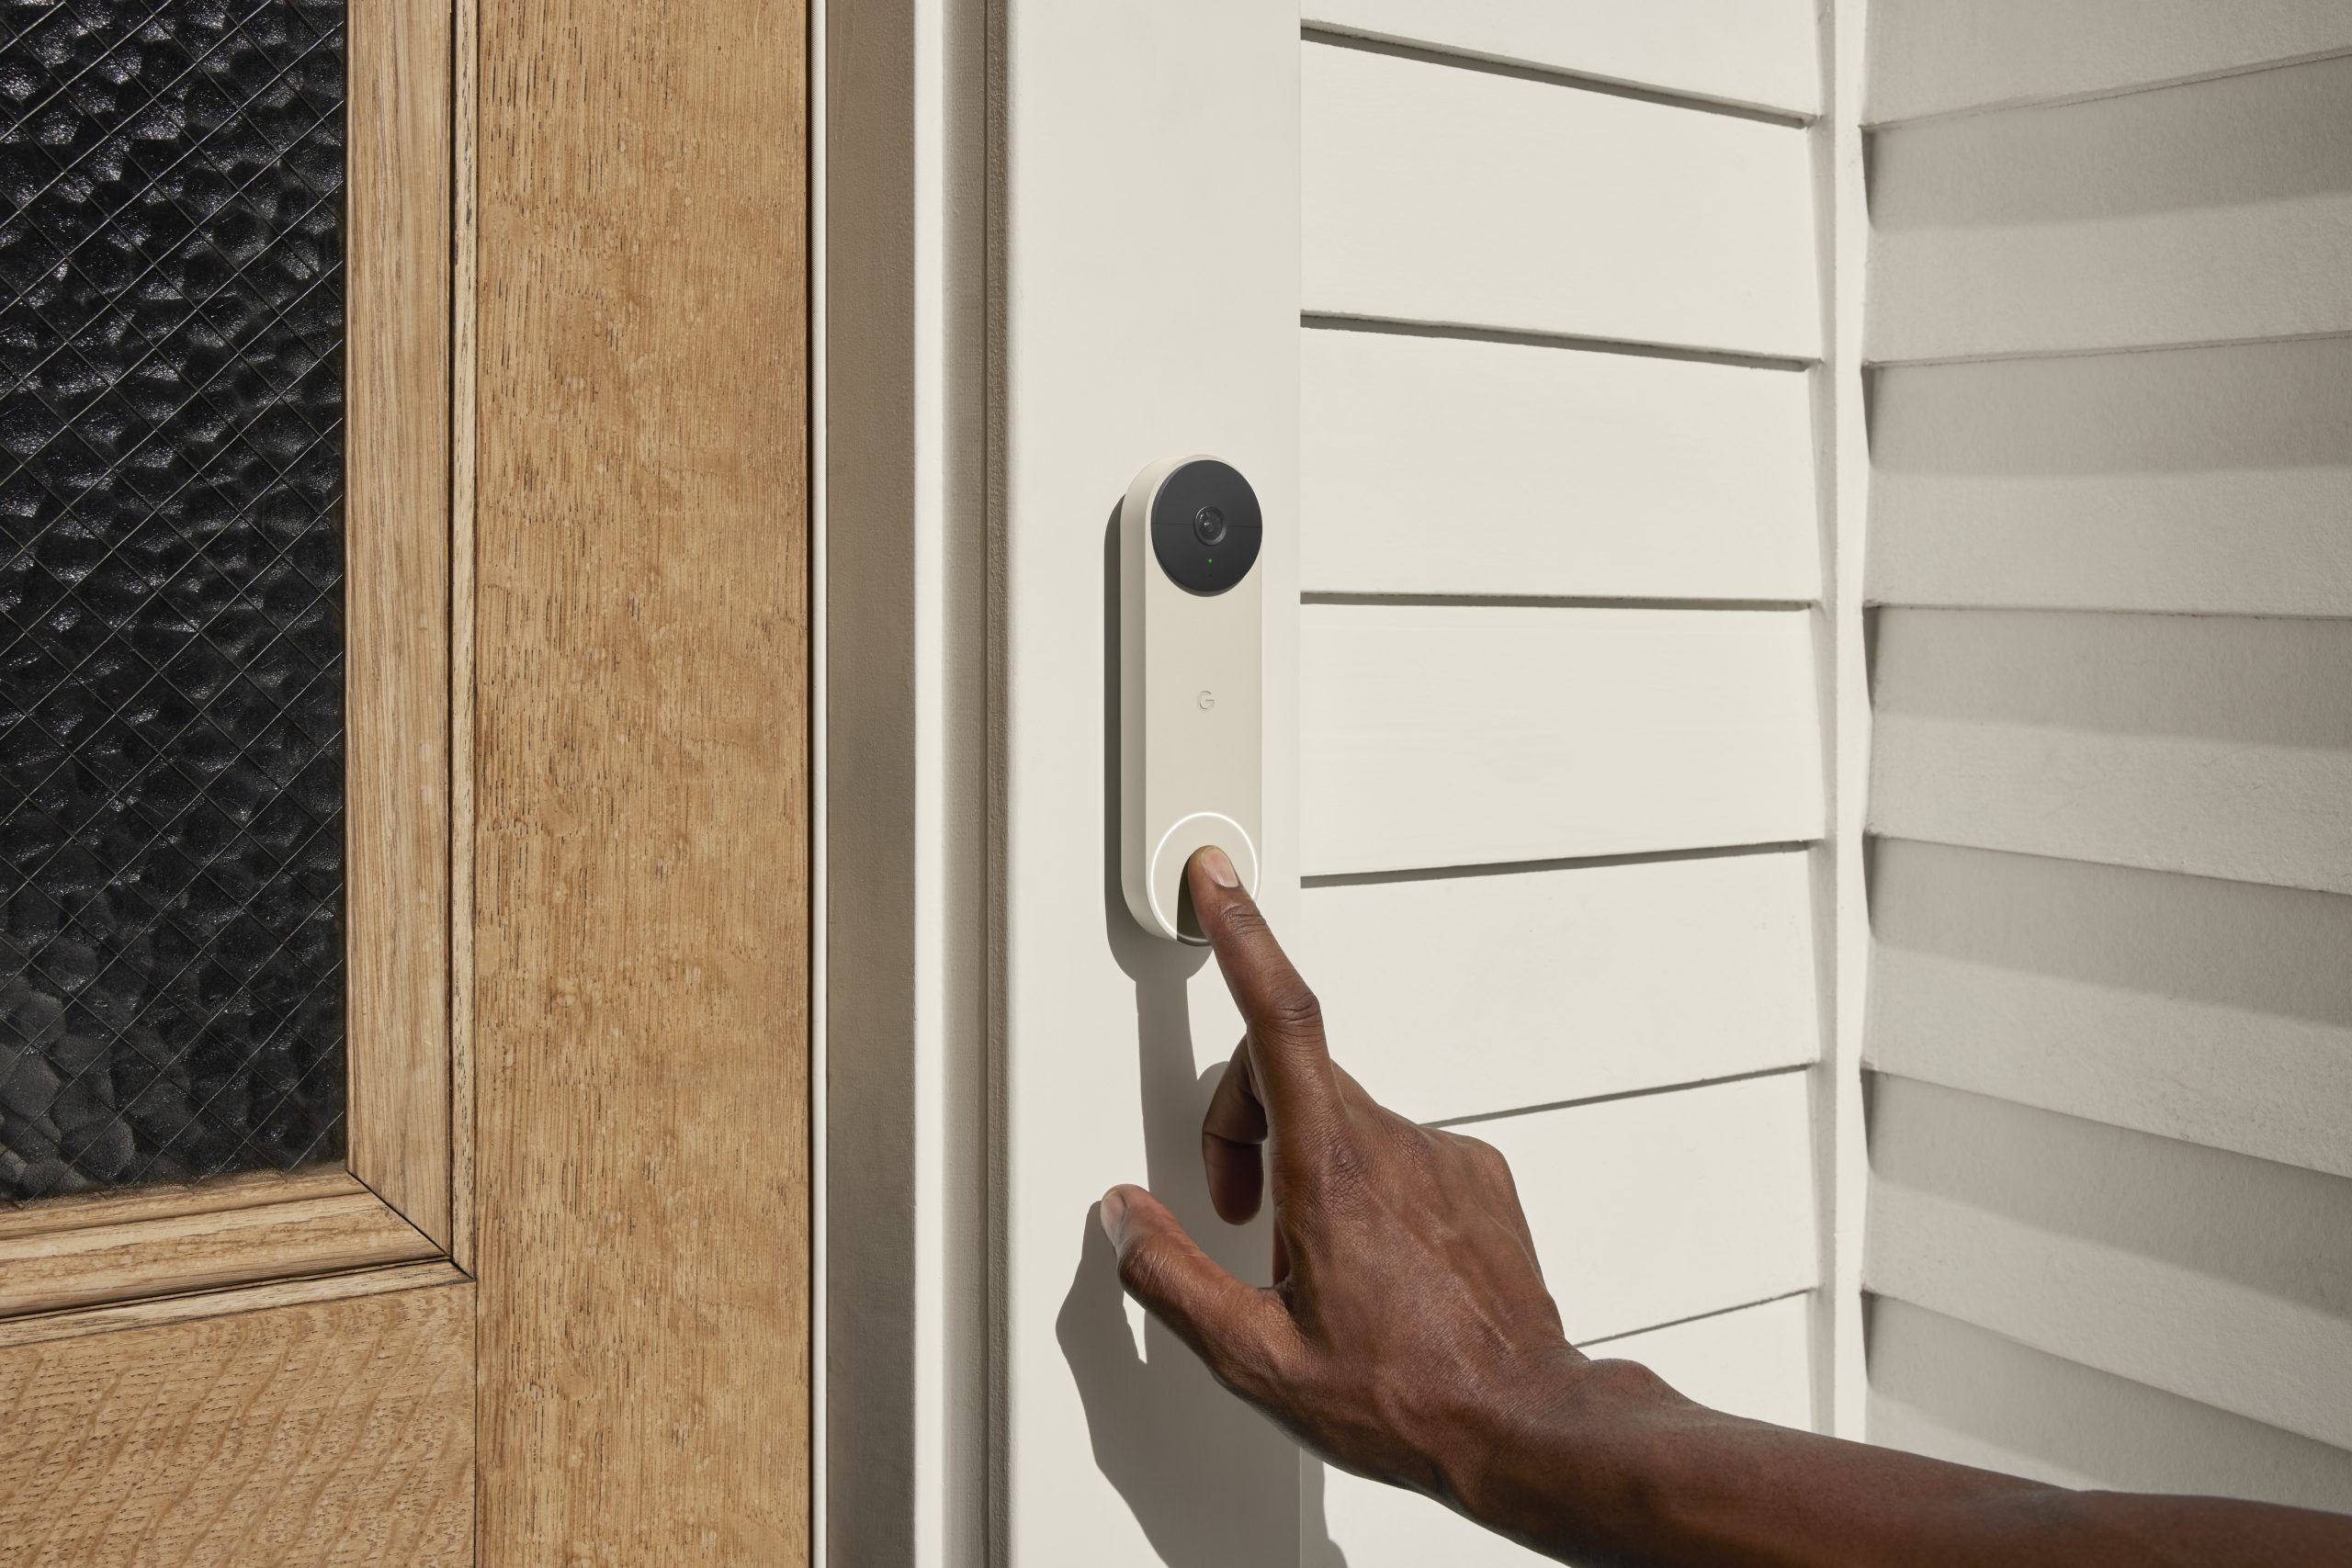 Nest Goodbye: Google's new Nest Doorbell can't record continuously even when it's wired-up - Android Police